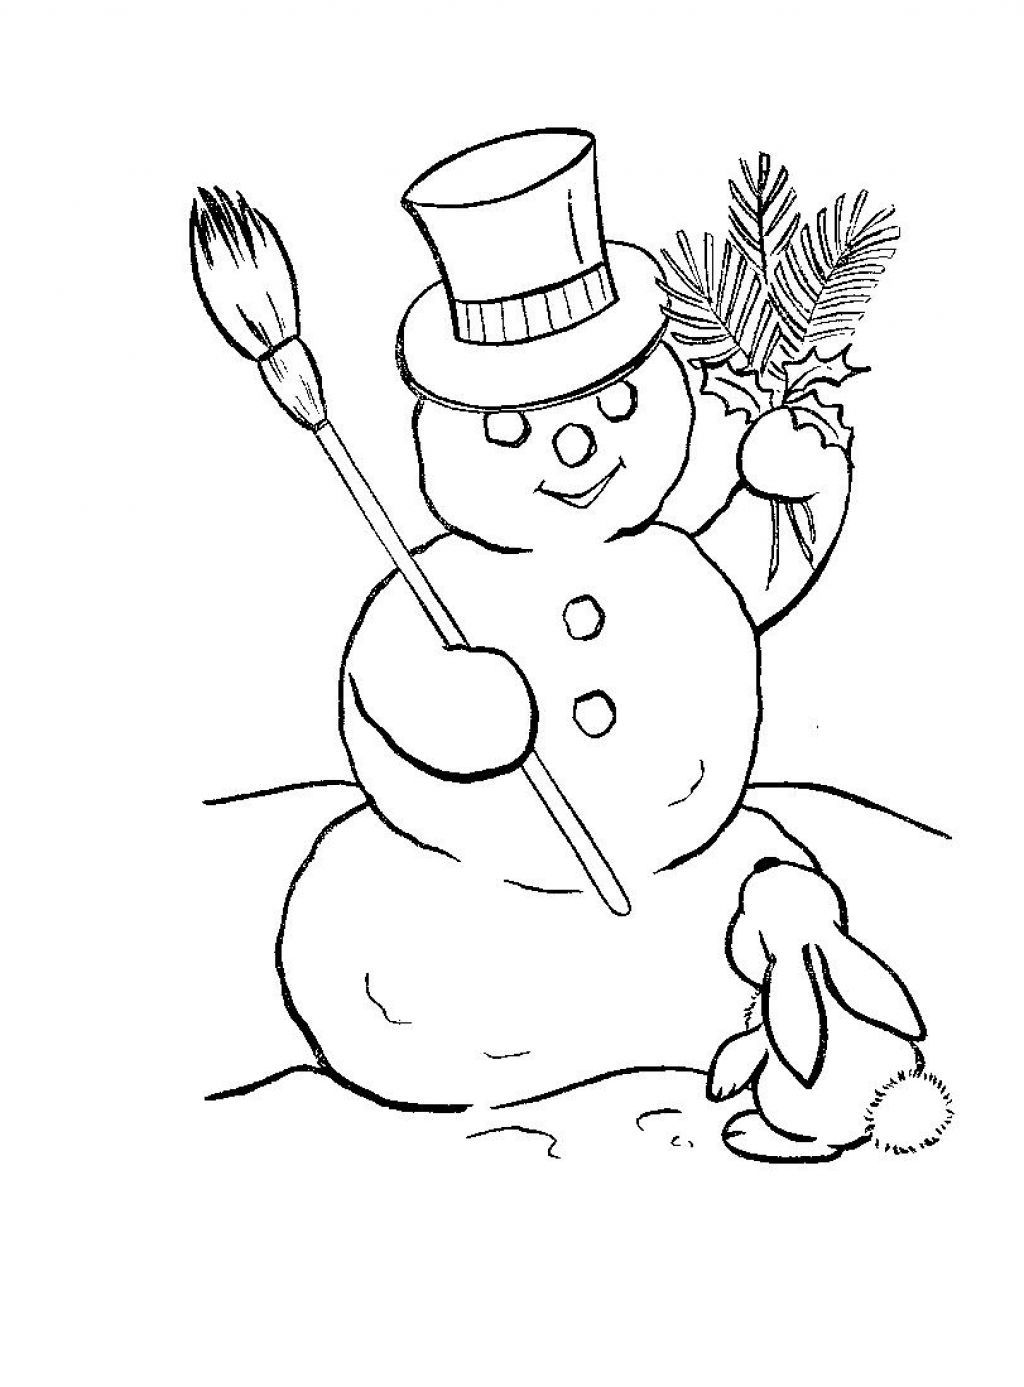 Snowman Coloring Pages Snowman Coloring Pages Cartoon Coloring